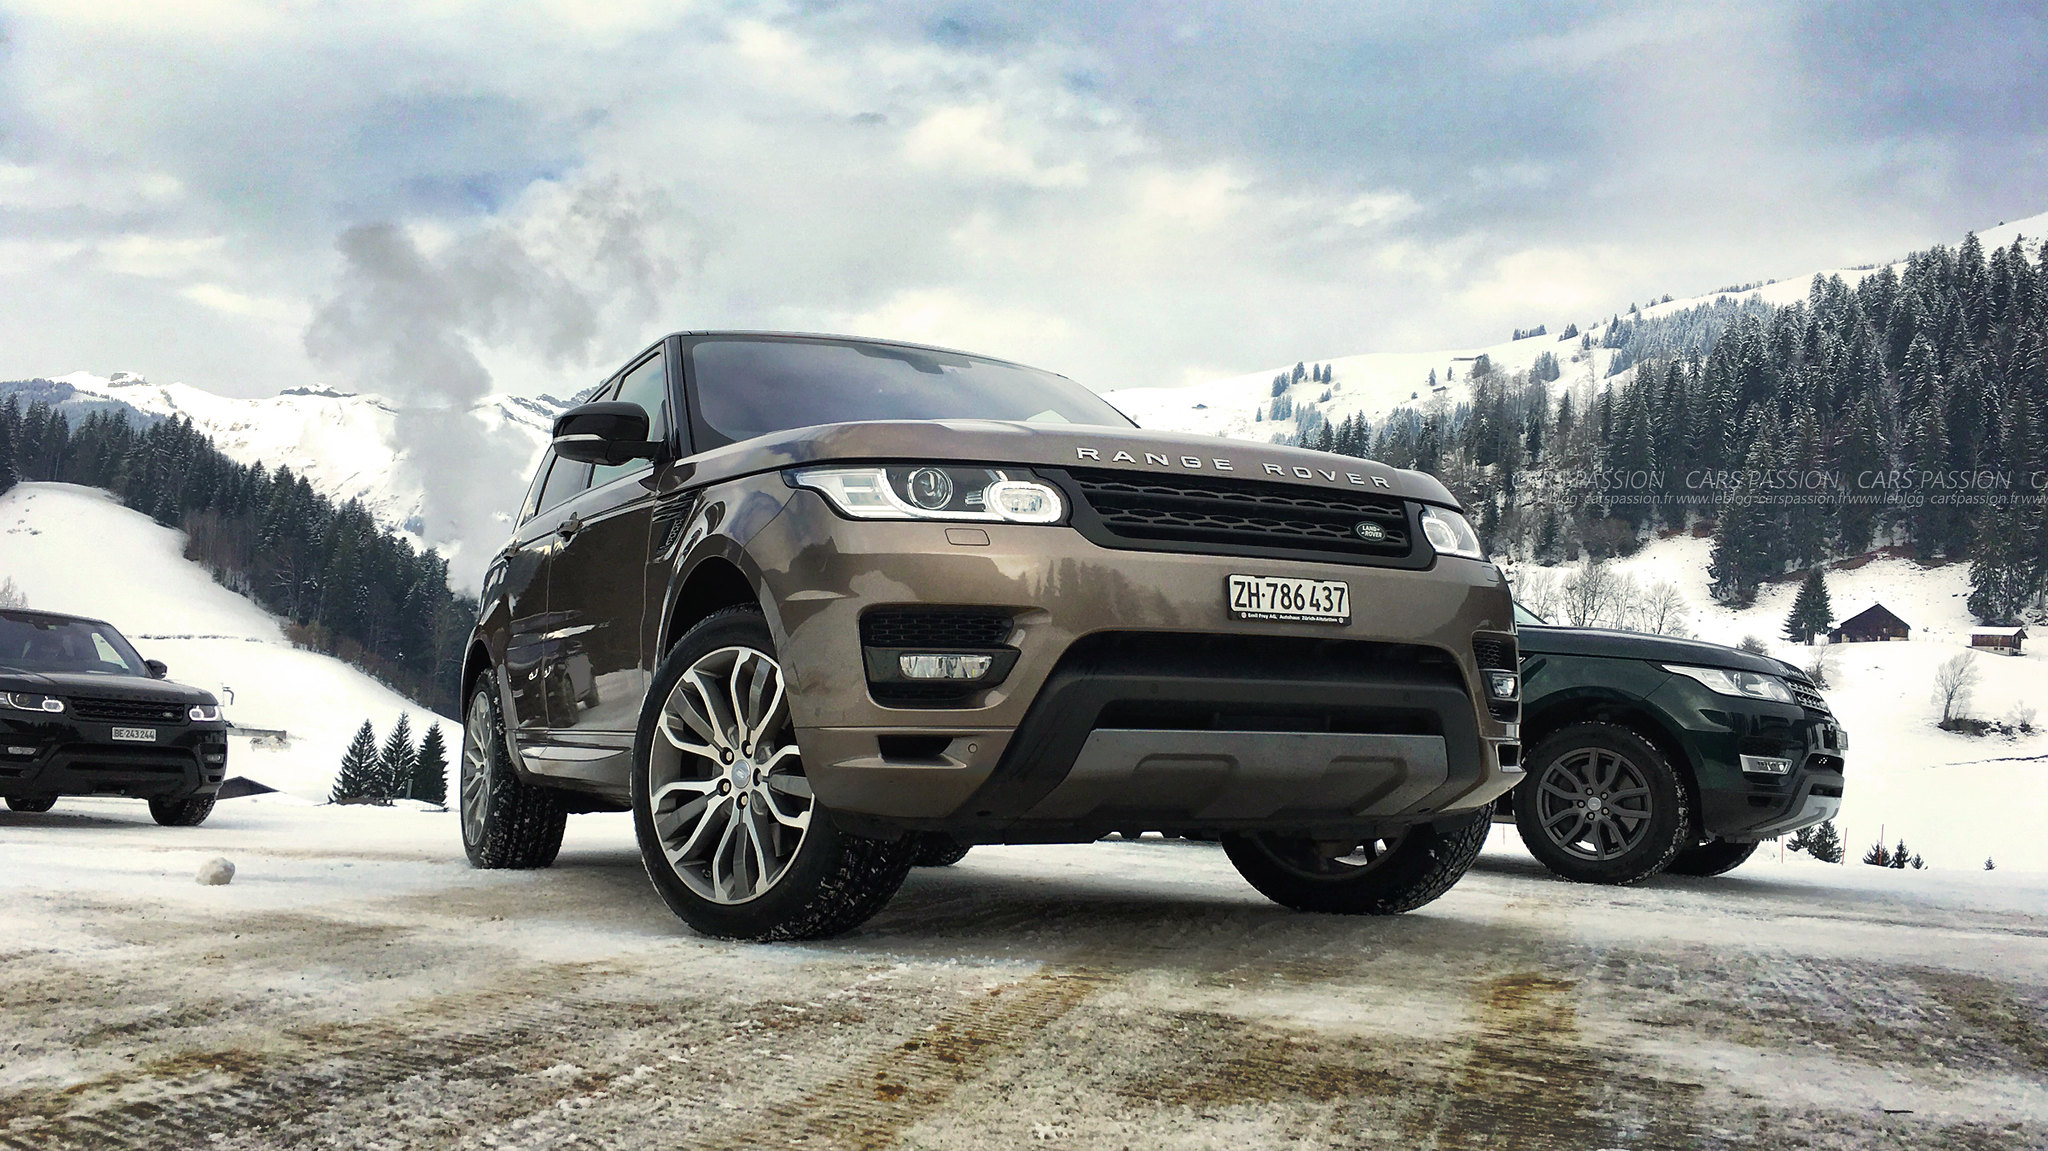 land-rover-ice-drivng-esperience-gstaad-(38)